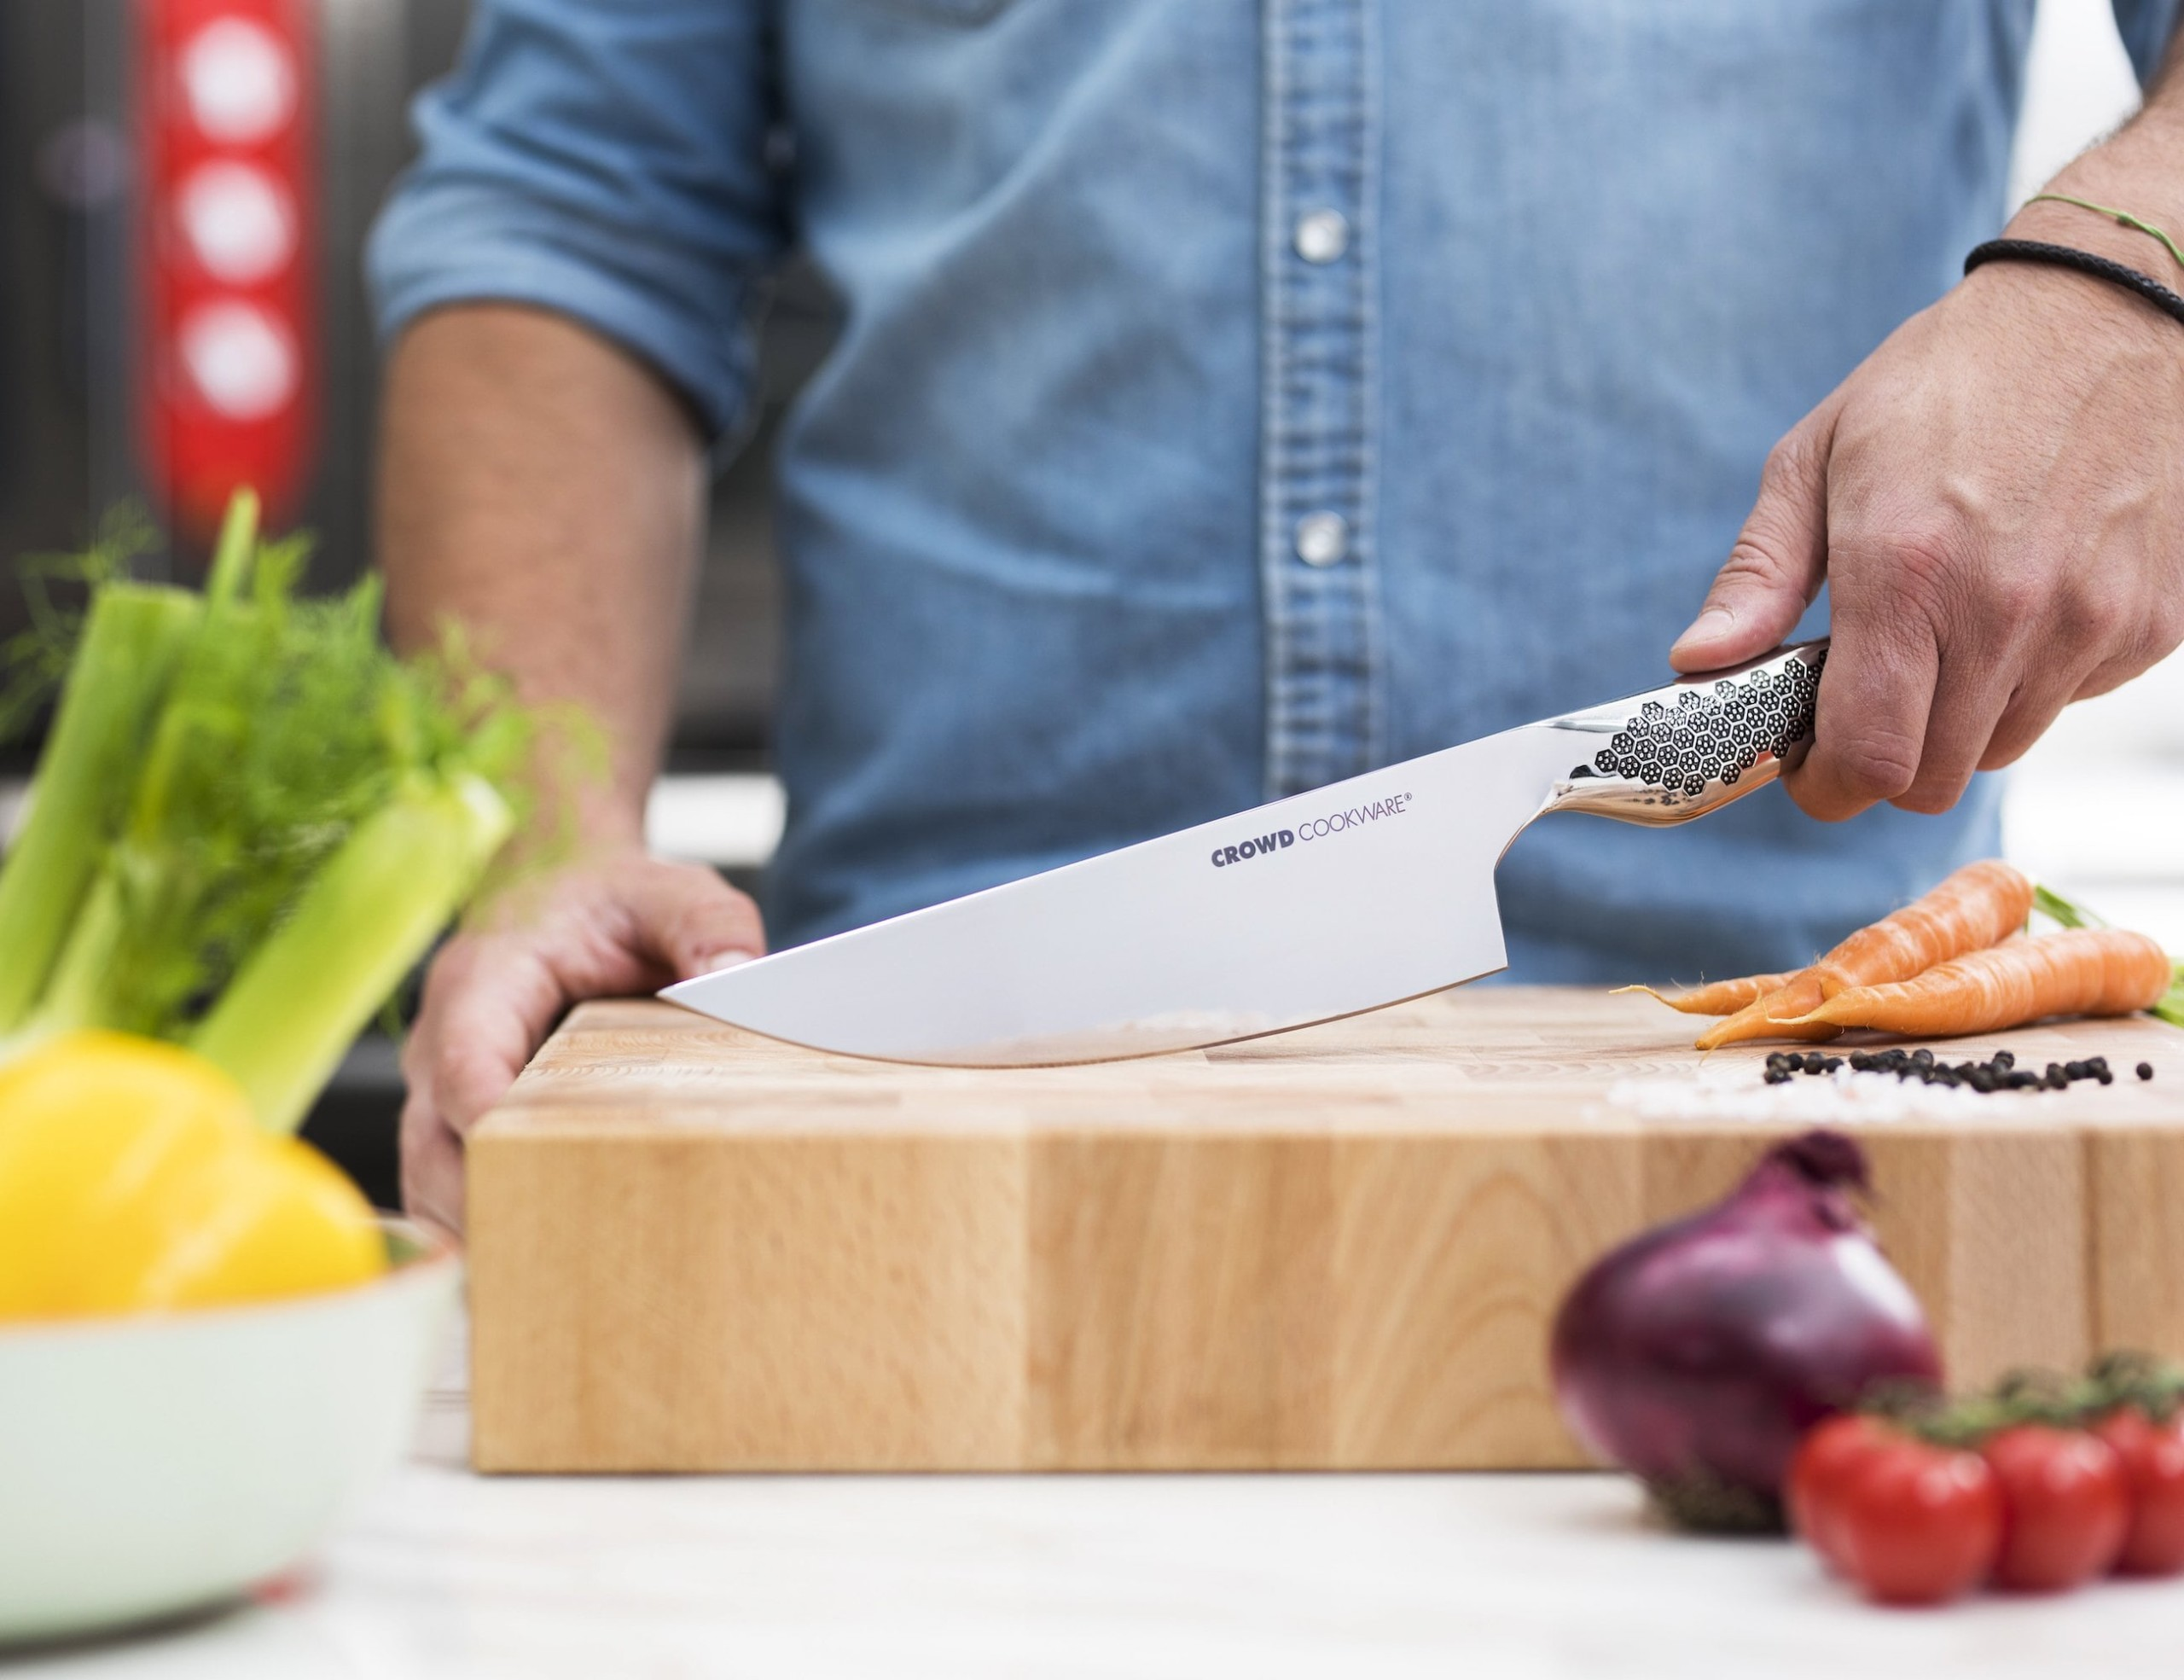 Wigbold Lifetime Sharp Chef's Knife is designed to last forever